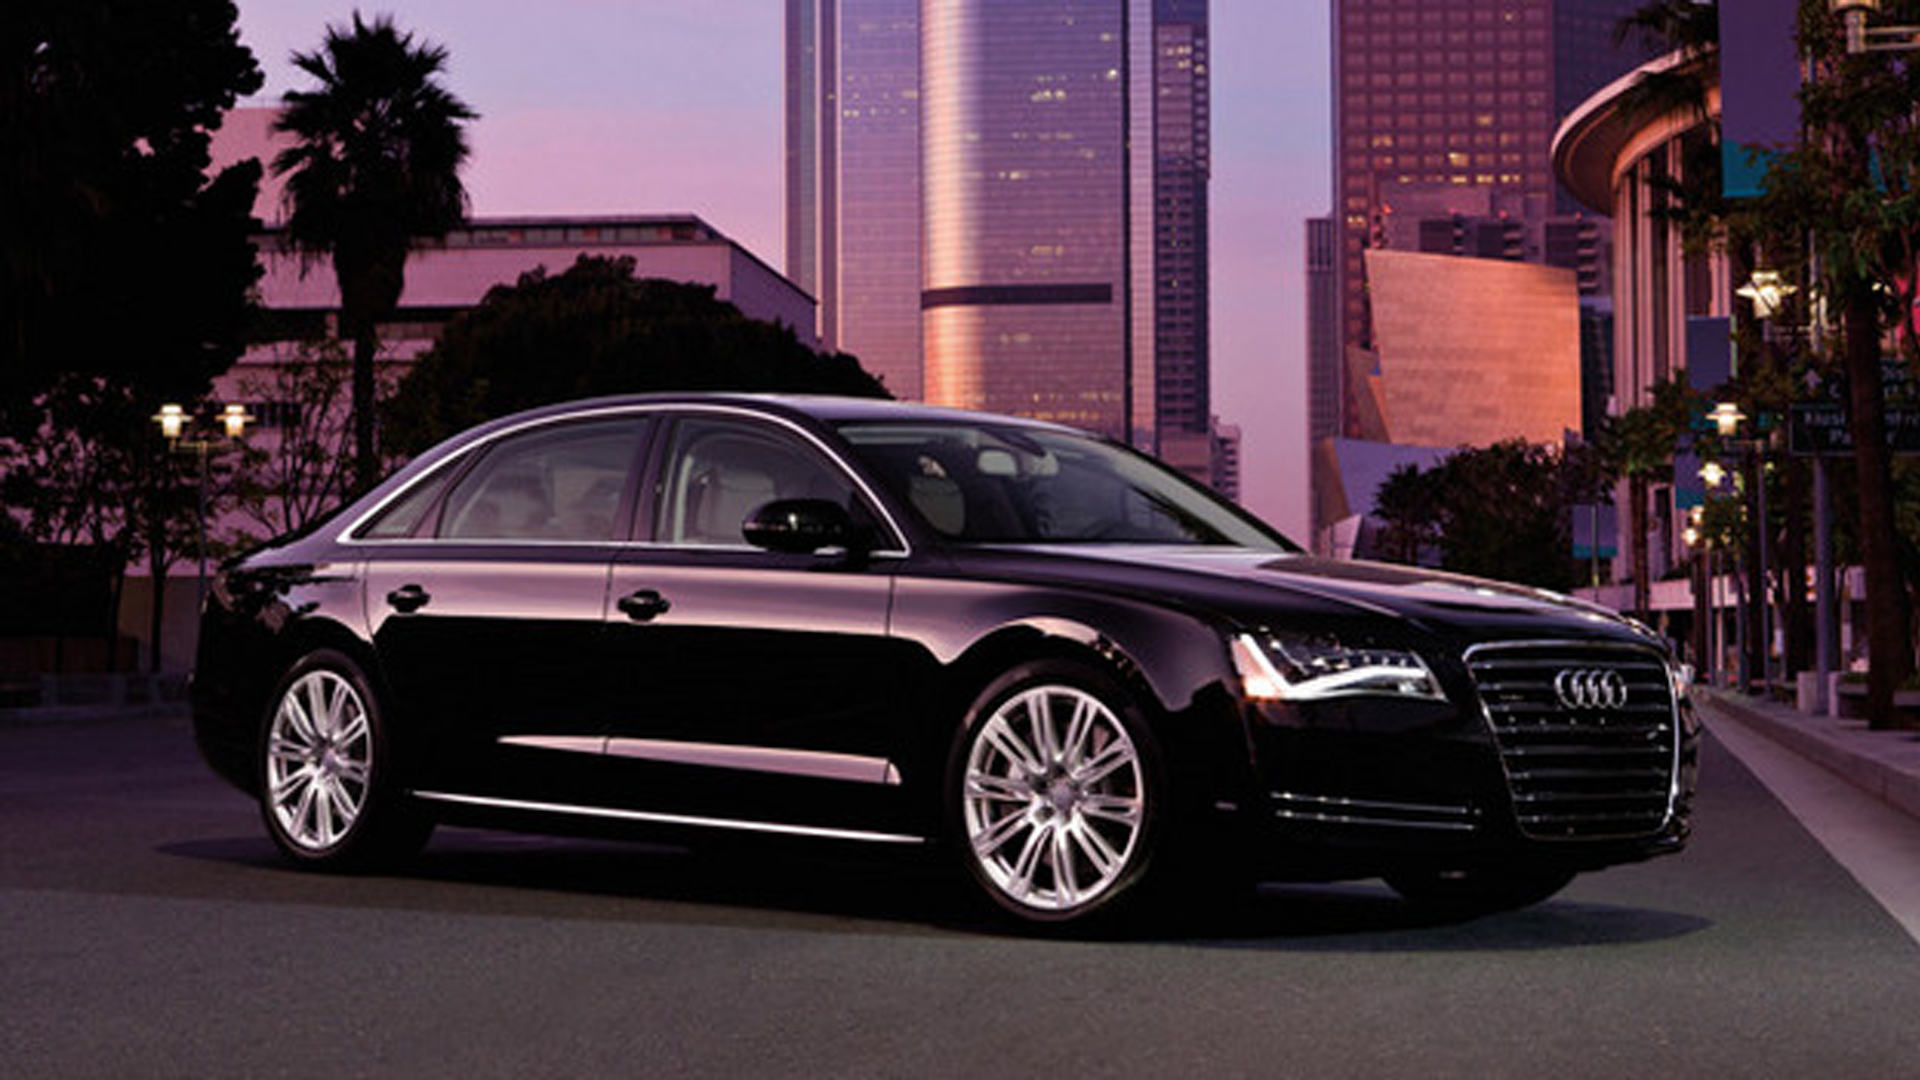 2013 Audi A8 4.0T Side (Photo 5 of 6)